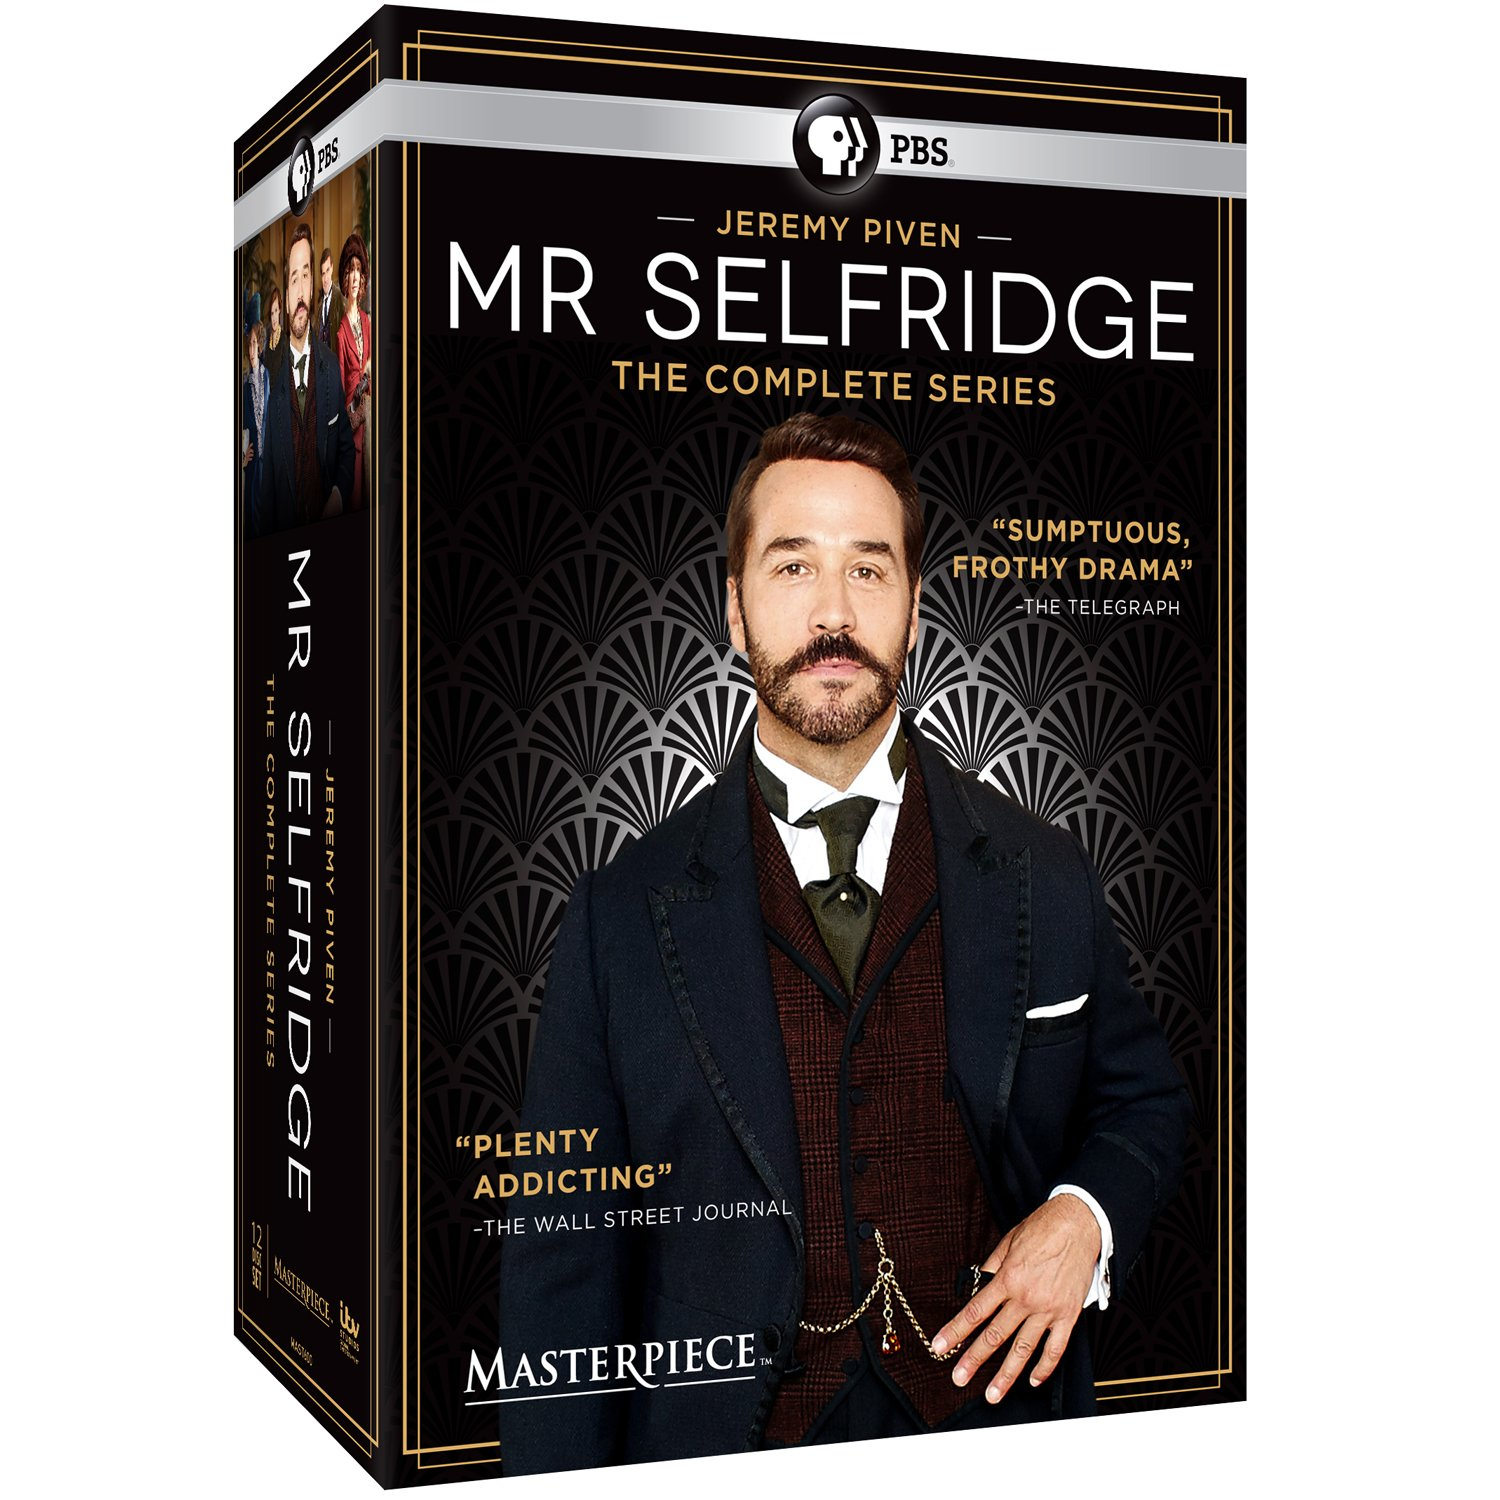 Masterpiece: Mr Selfridge - The Complete Series